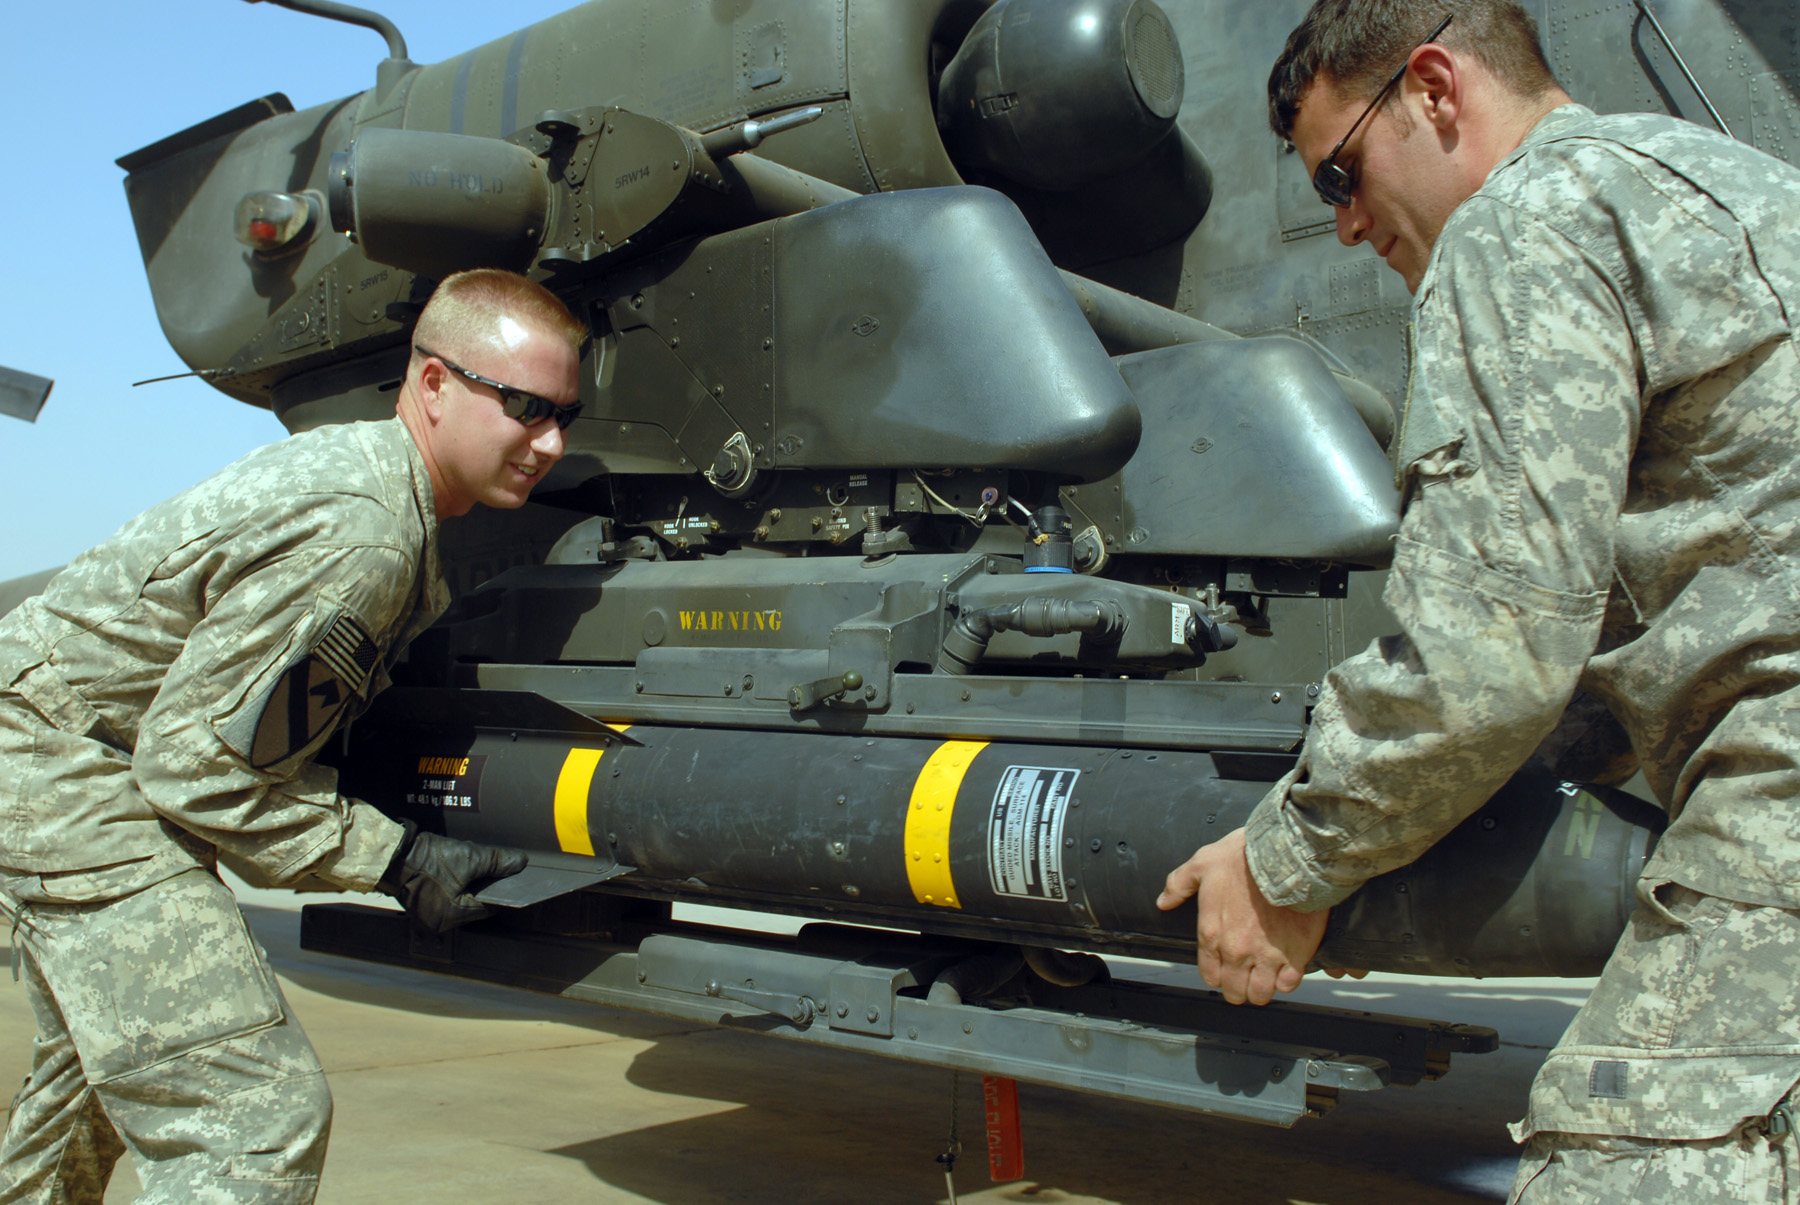 missile manually drop from helicopter